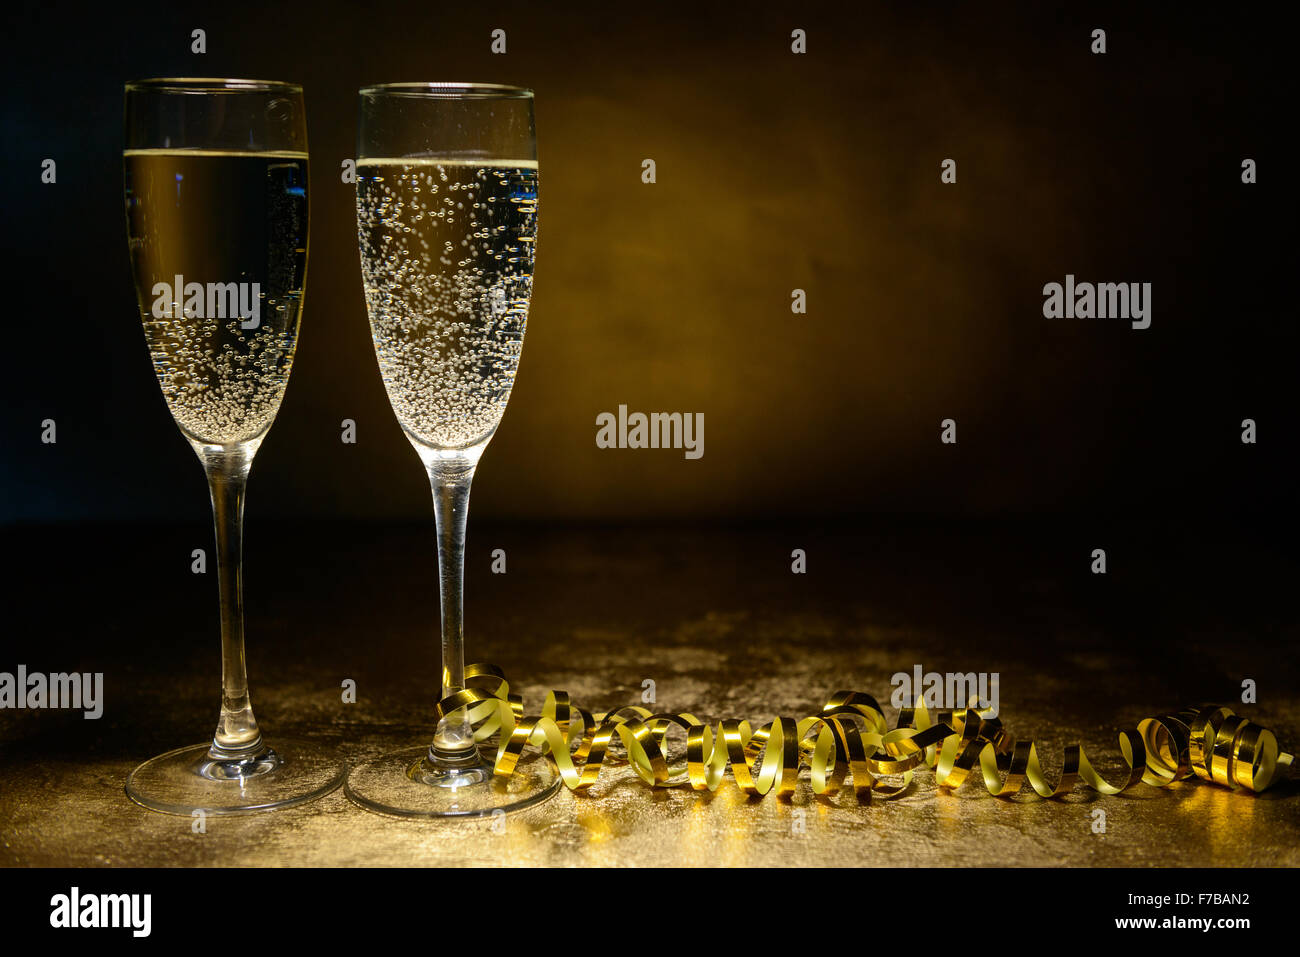 two glasses of champagne on a gold background. Christmas and New Year theme - Stock Image